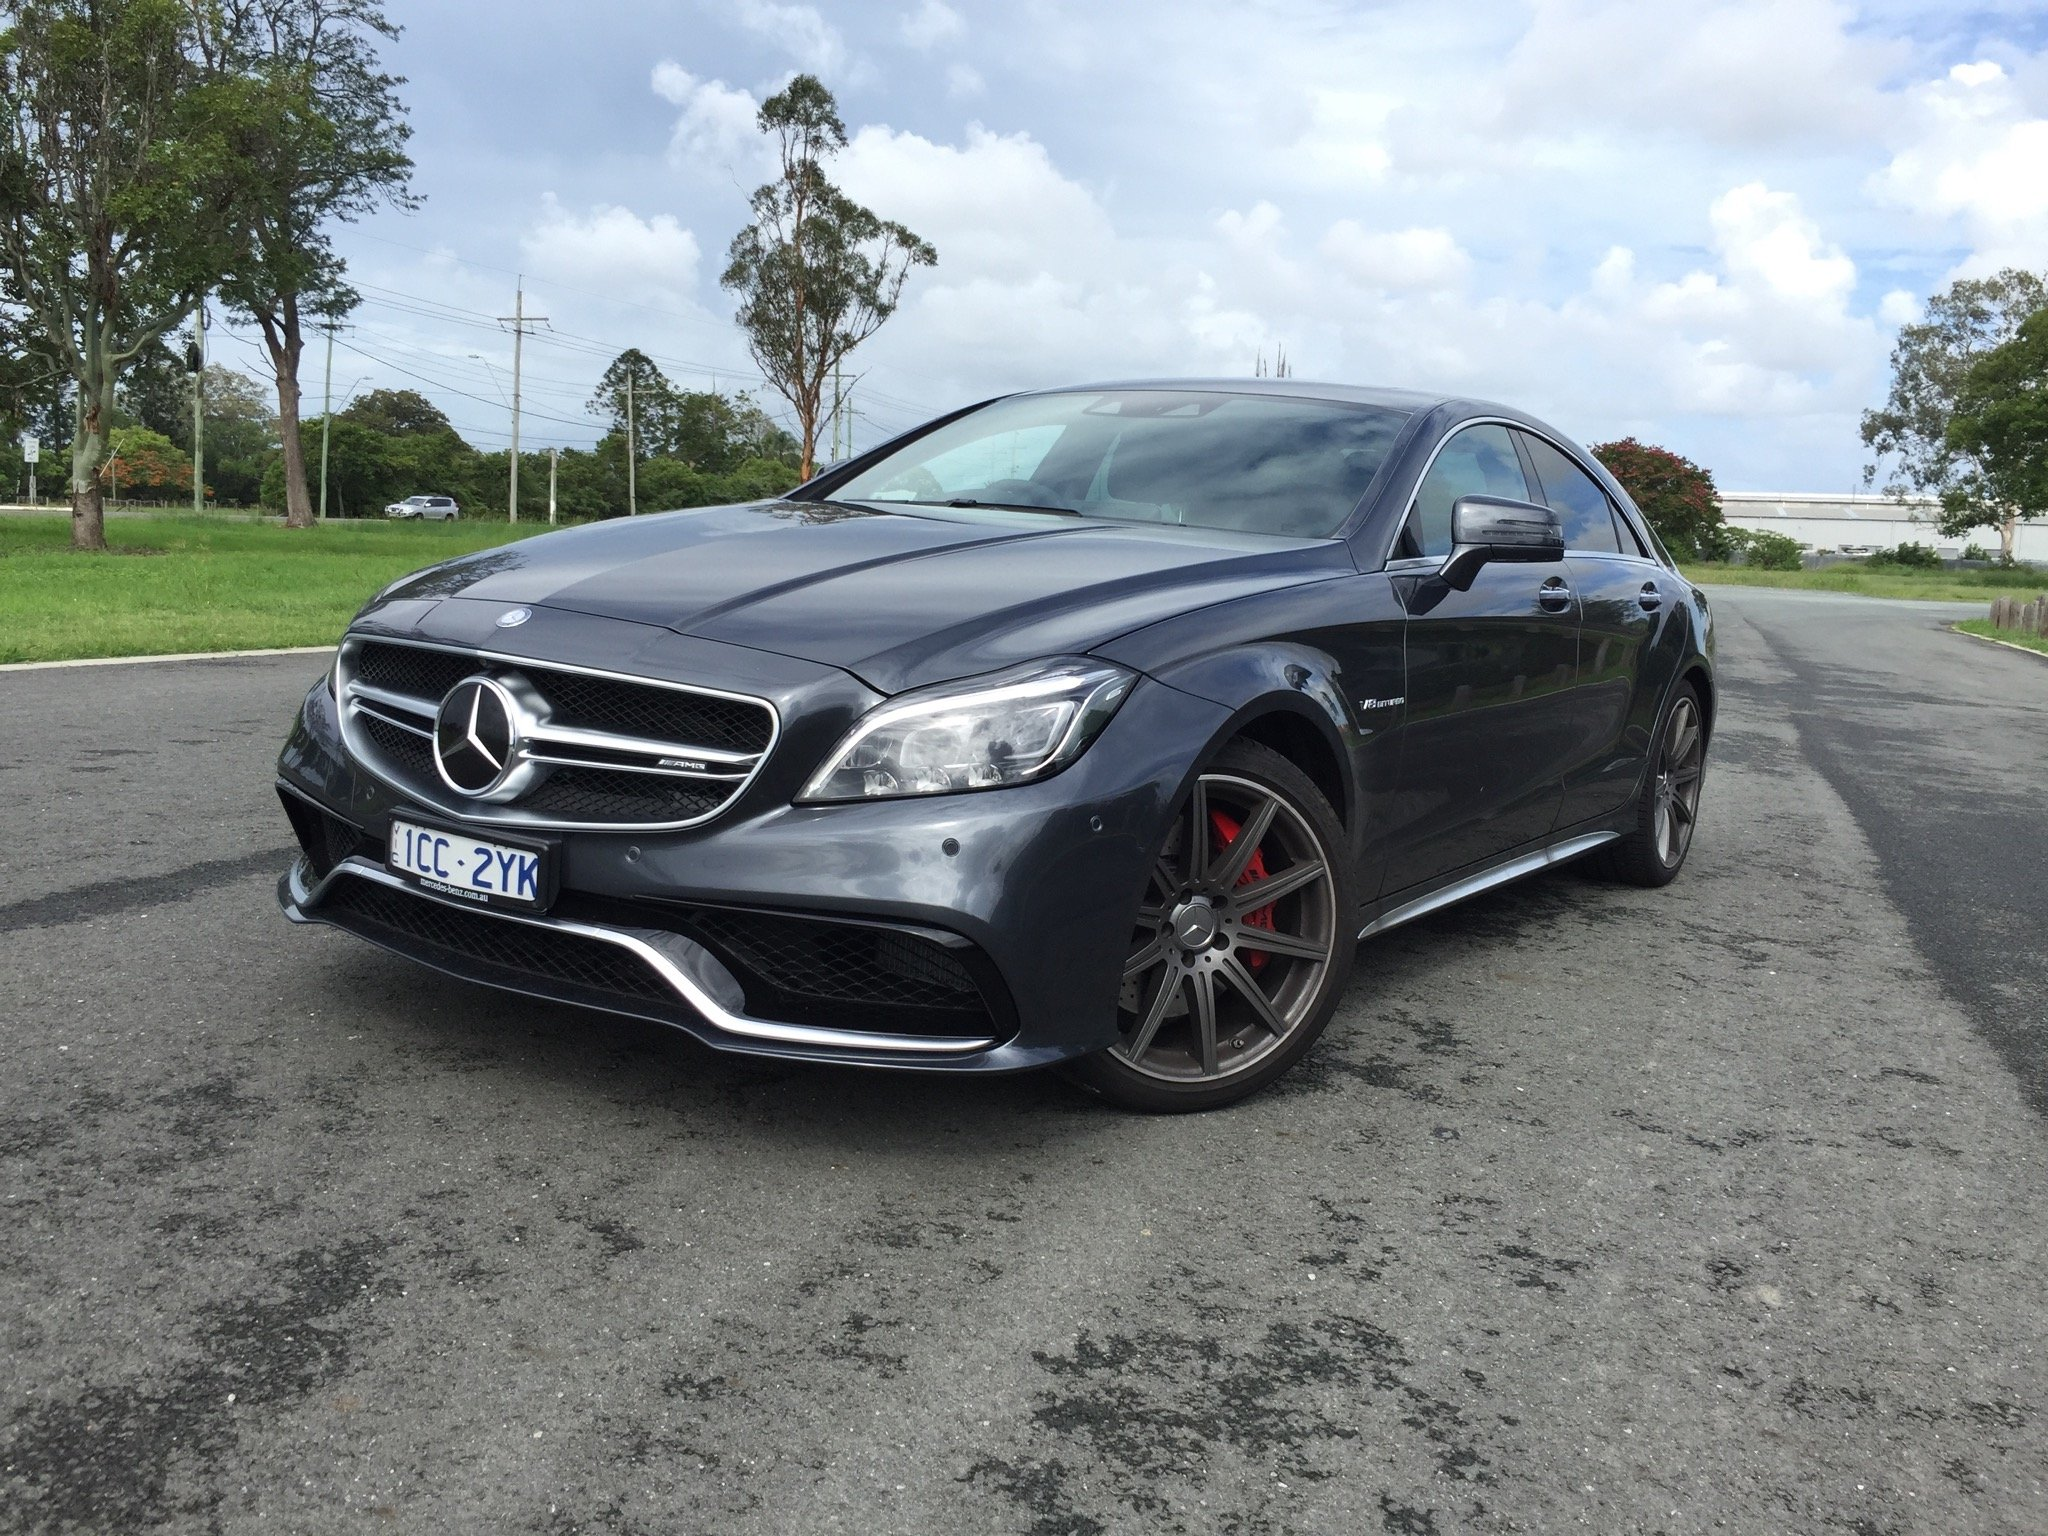 2015 mercedes benz cls 63 amg s review caradvice. Black Bedroom Furniture Sets. Home Design Ideas